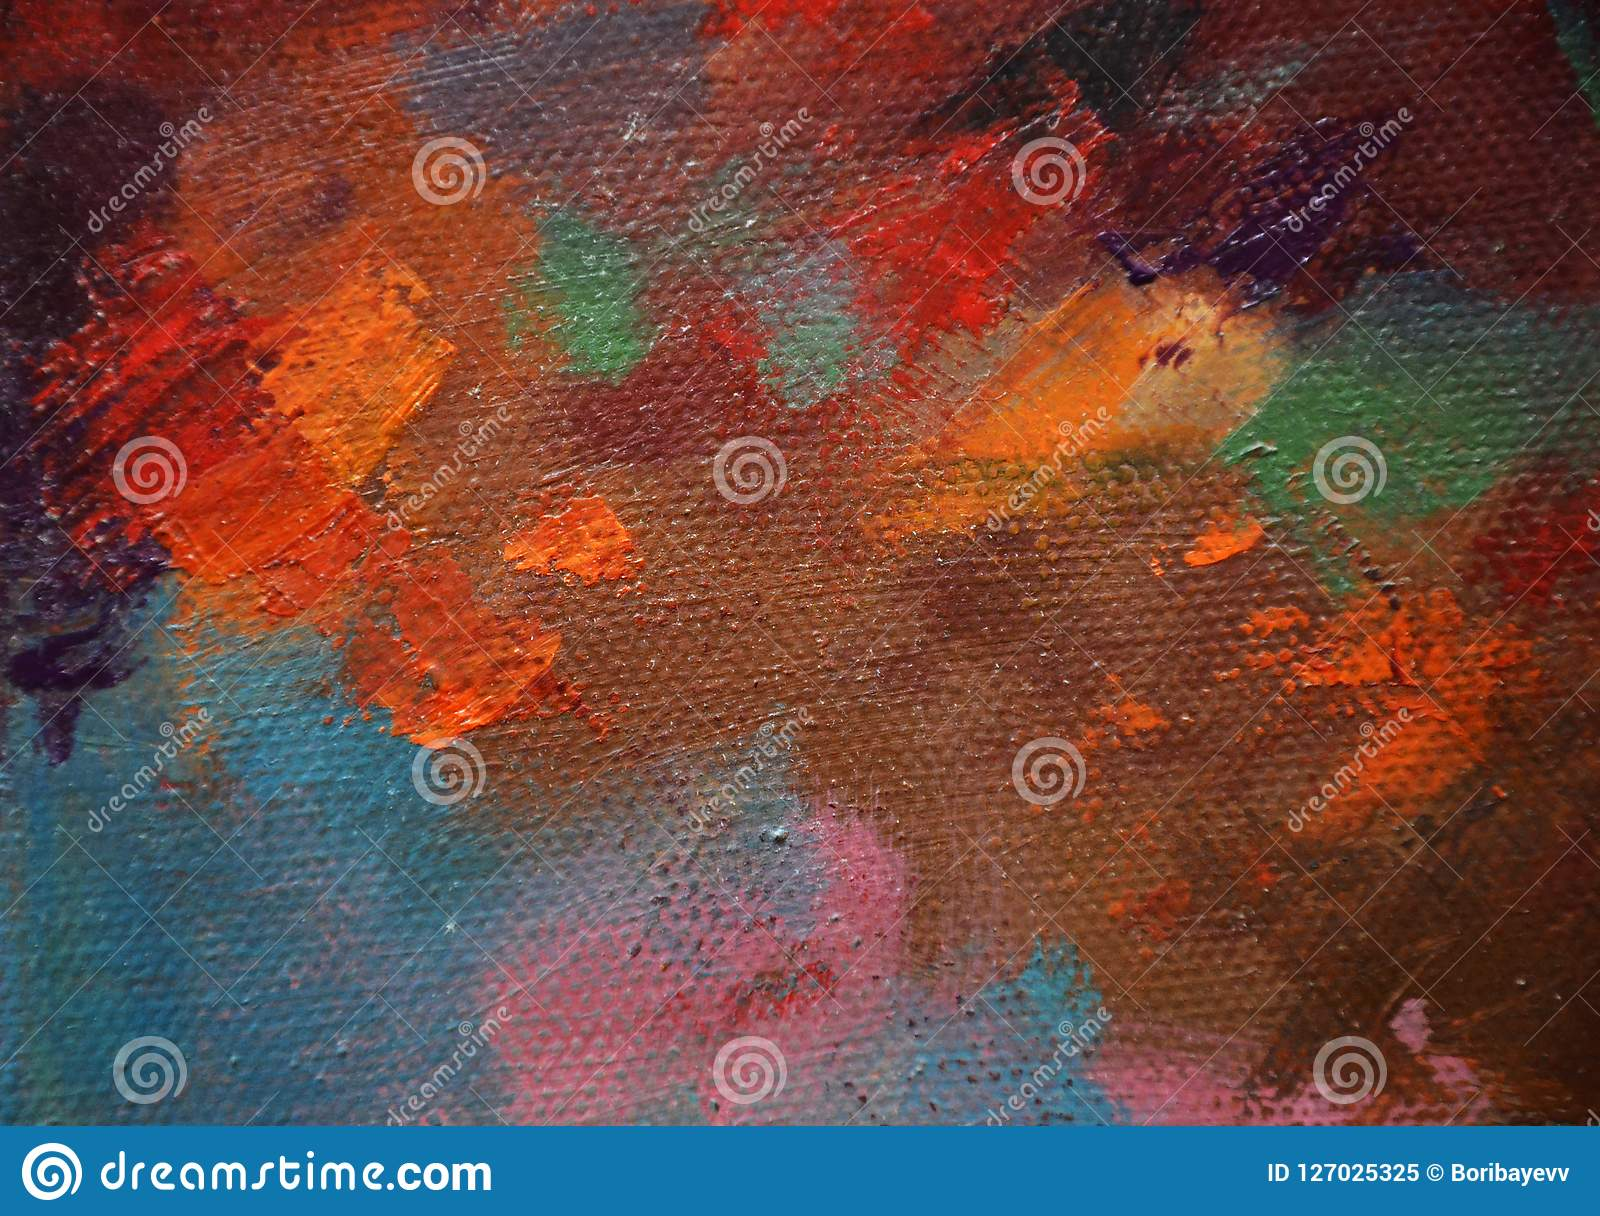 Different colors on canvas, red, orange, brown and blue, pink